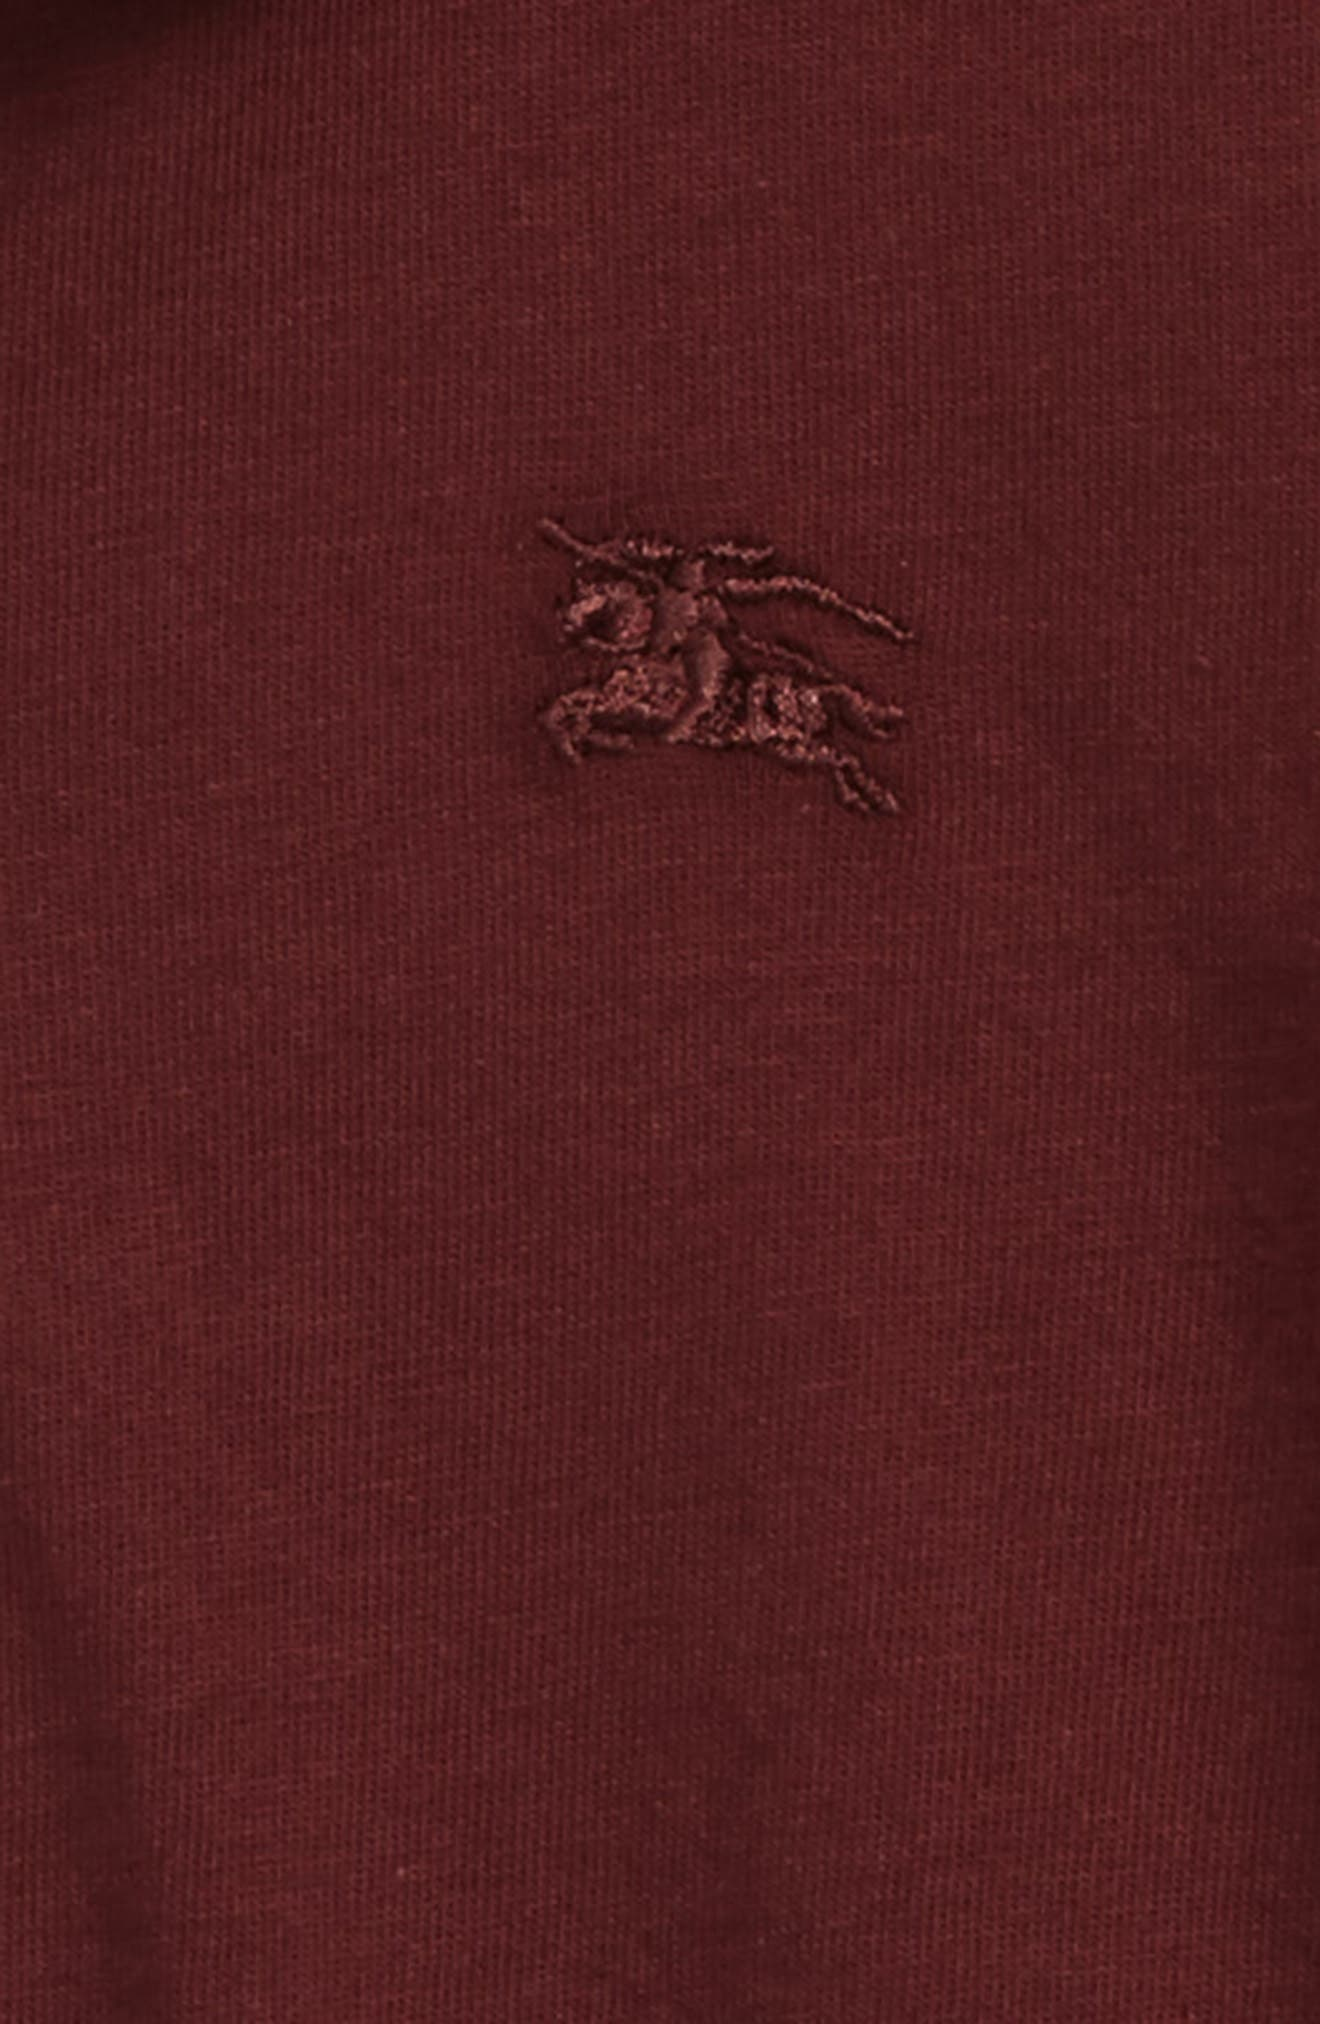 'Mini' Long Sleeve Polo Shirt,                             Alternate thumbnail 2, color,                             Oxblood